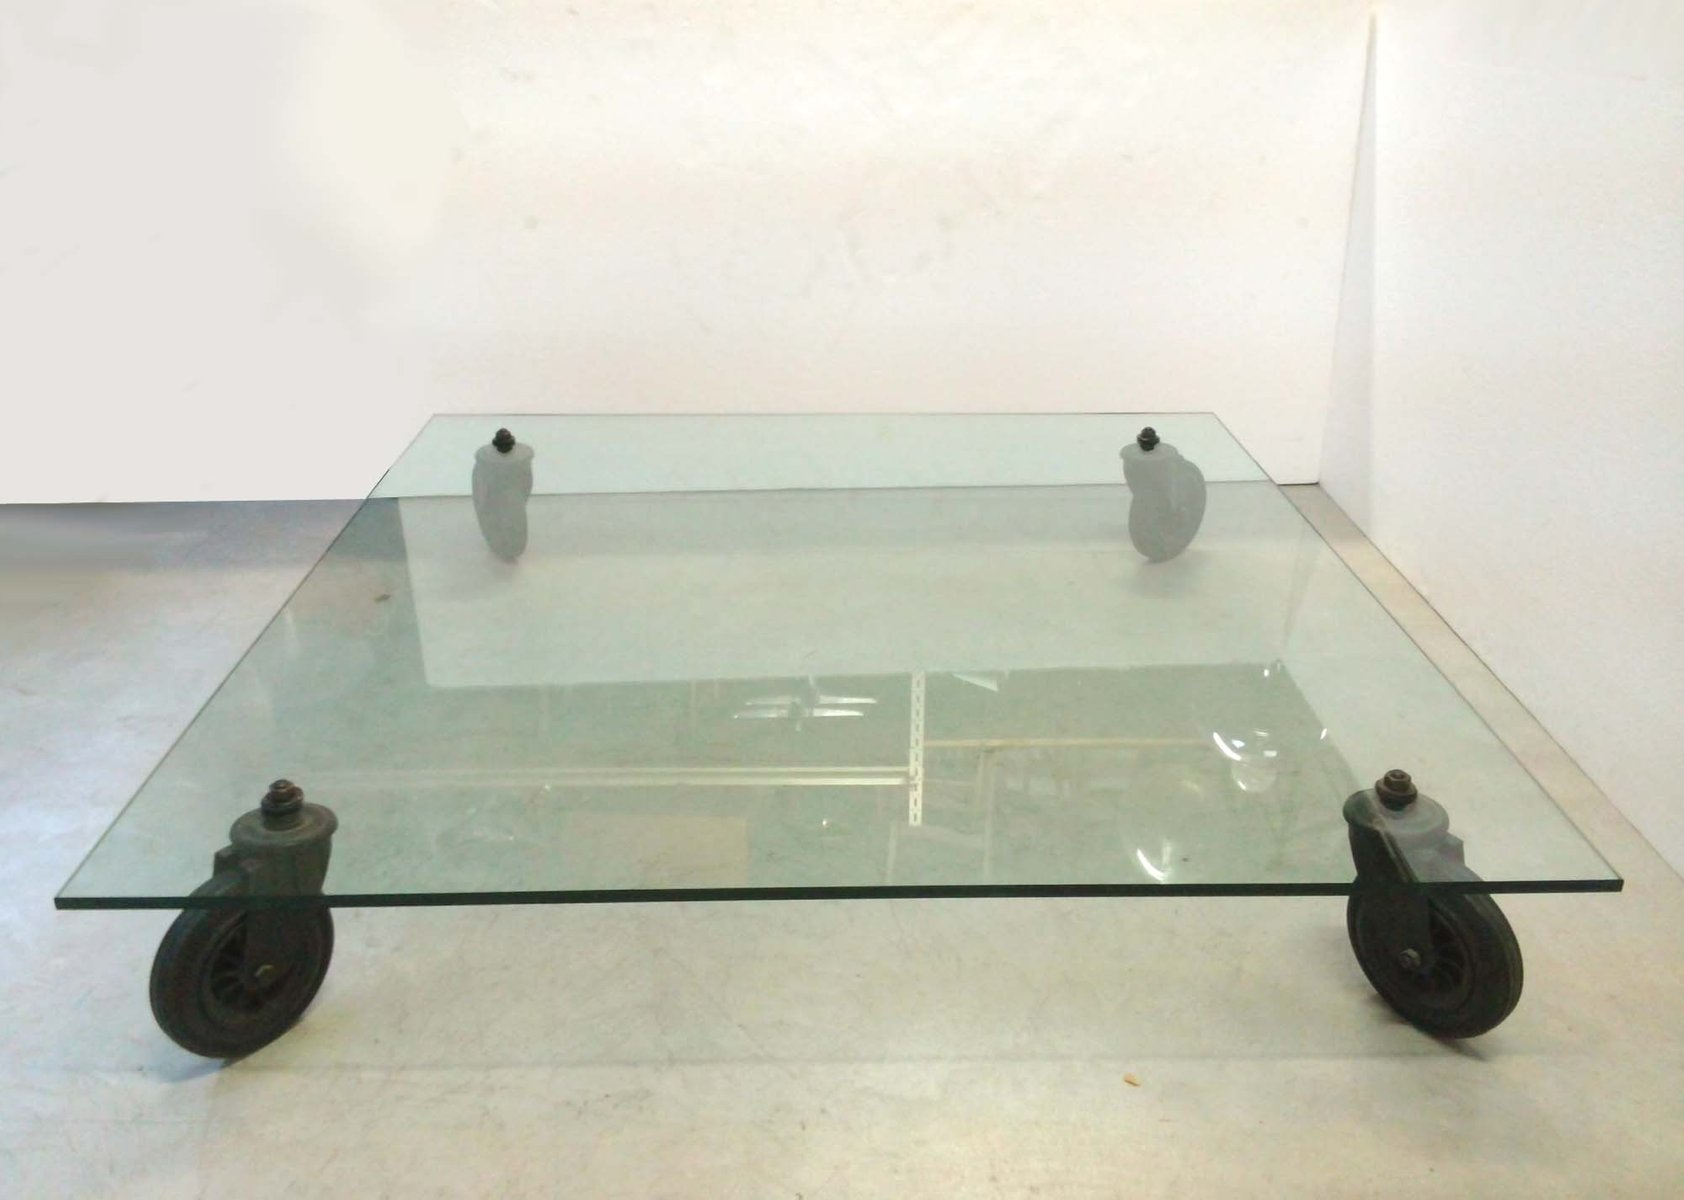 Vintage Model 2653 Table by Gae Aulenti for Fontana Arte for sale